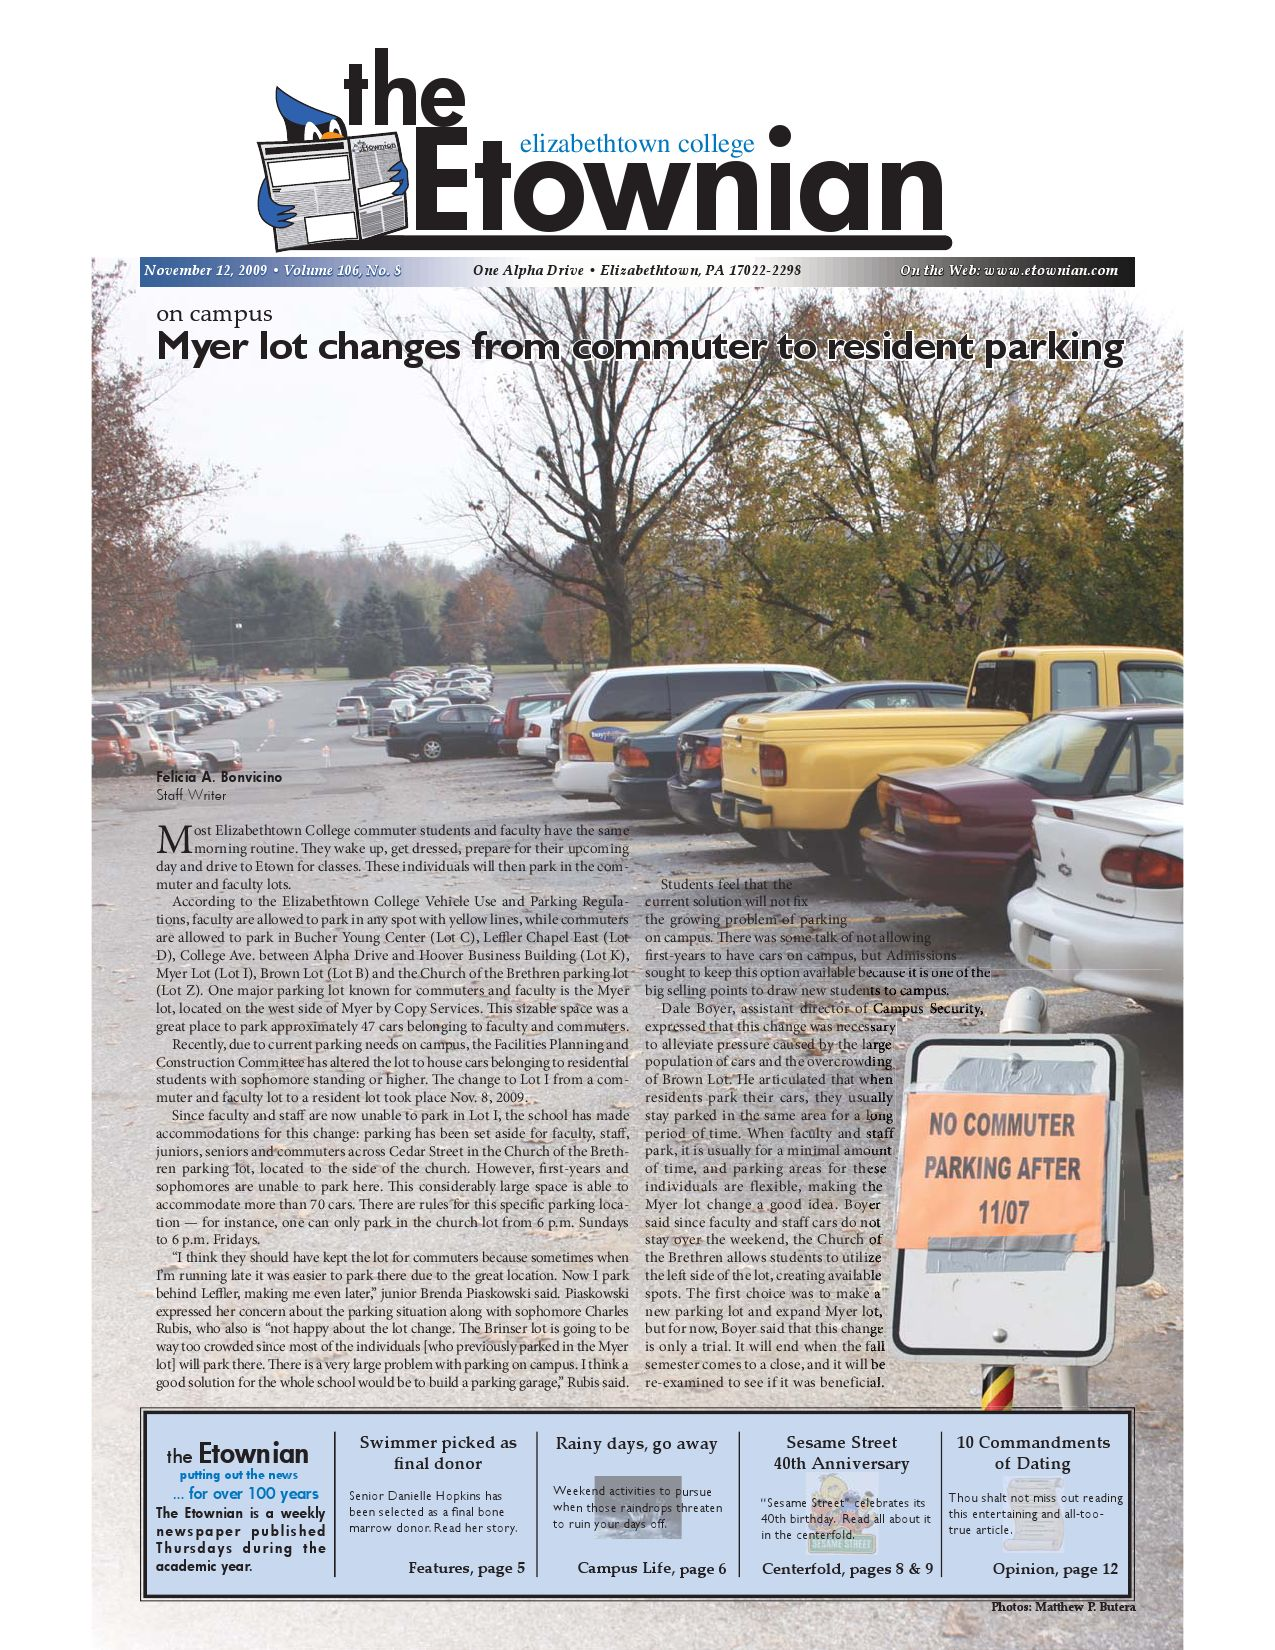 Etownian Issue 8 - November 12, 2009 by The Etownian - issuu